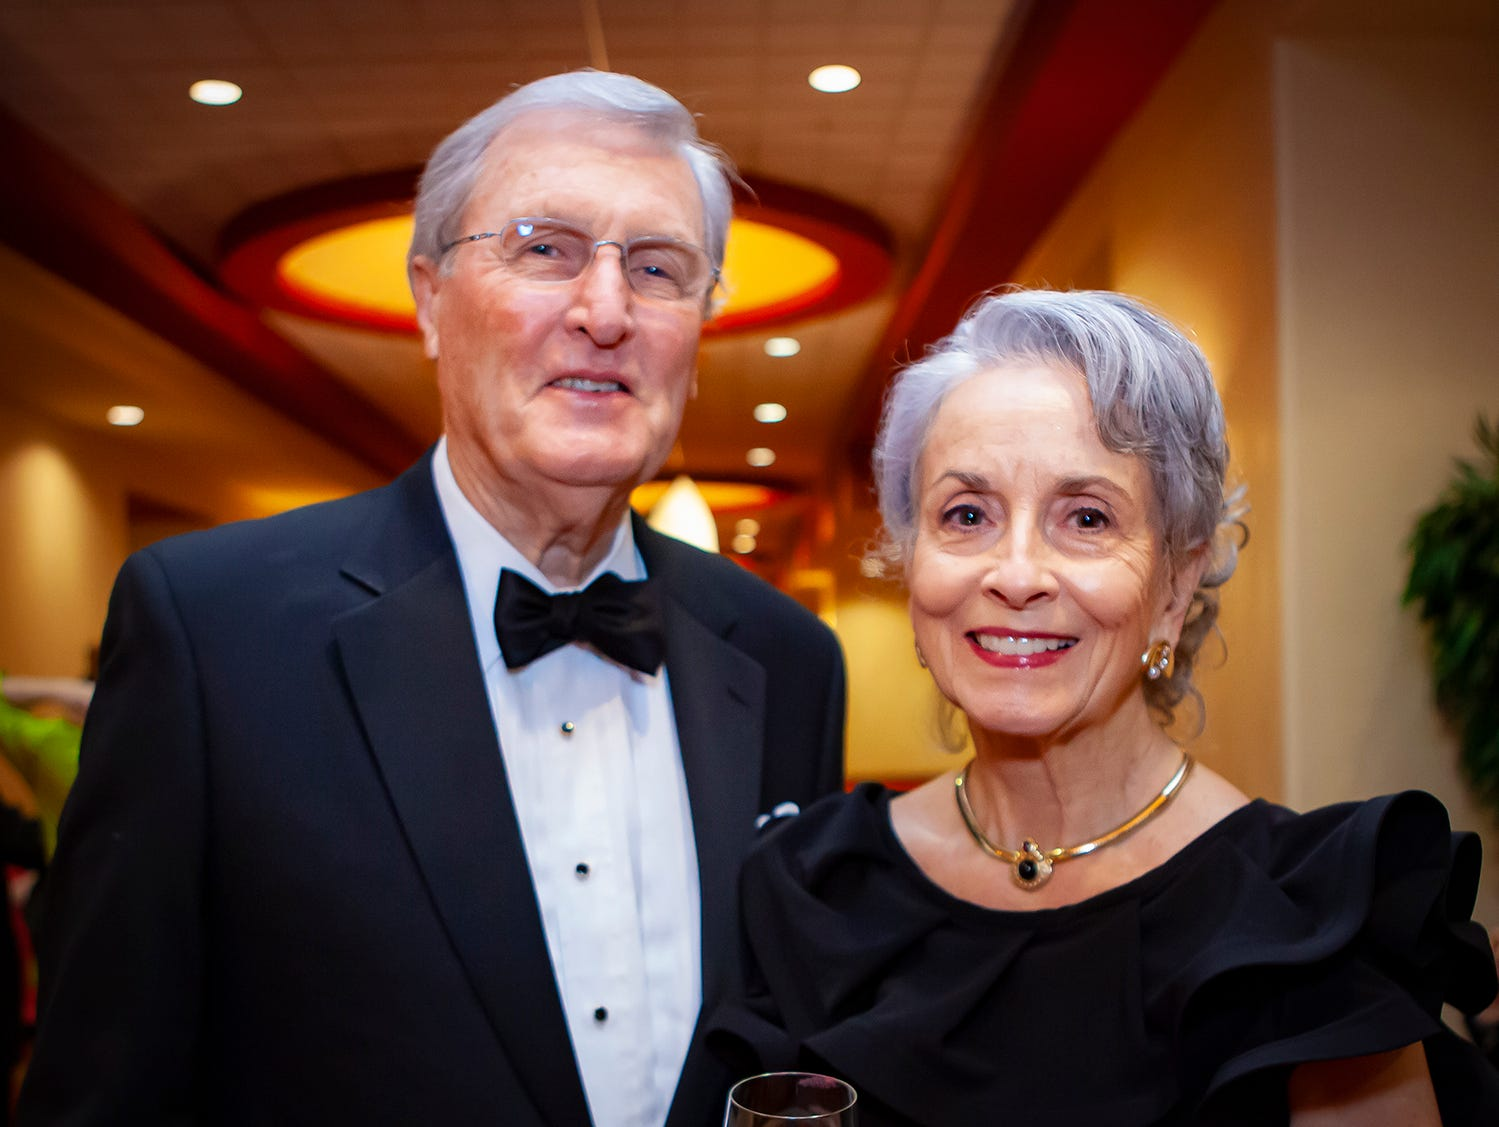 Ed and Andrea Loughry at the 2019 Saint Thomas Rutherford Foundation Gala on Saturday, Jan. 19, 2019 at Embassy Suites Murfreesboro.